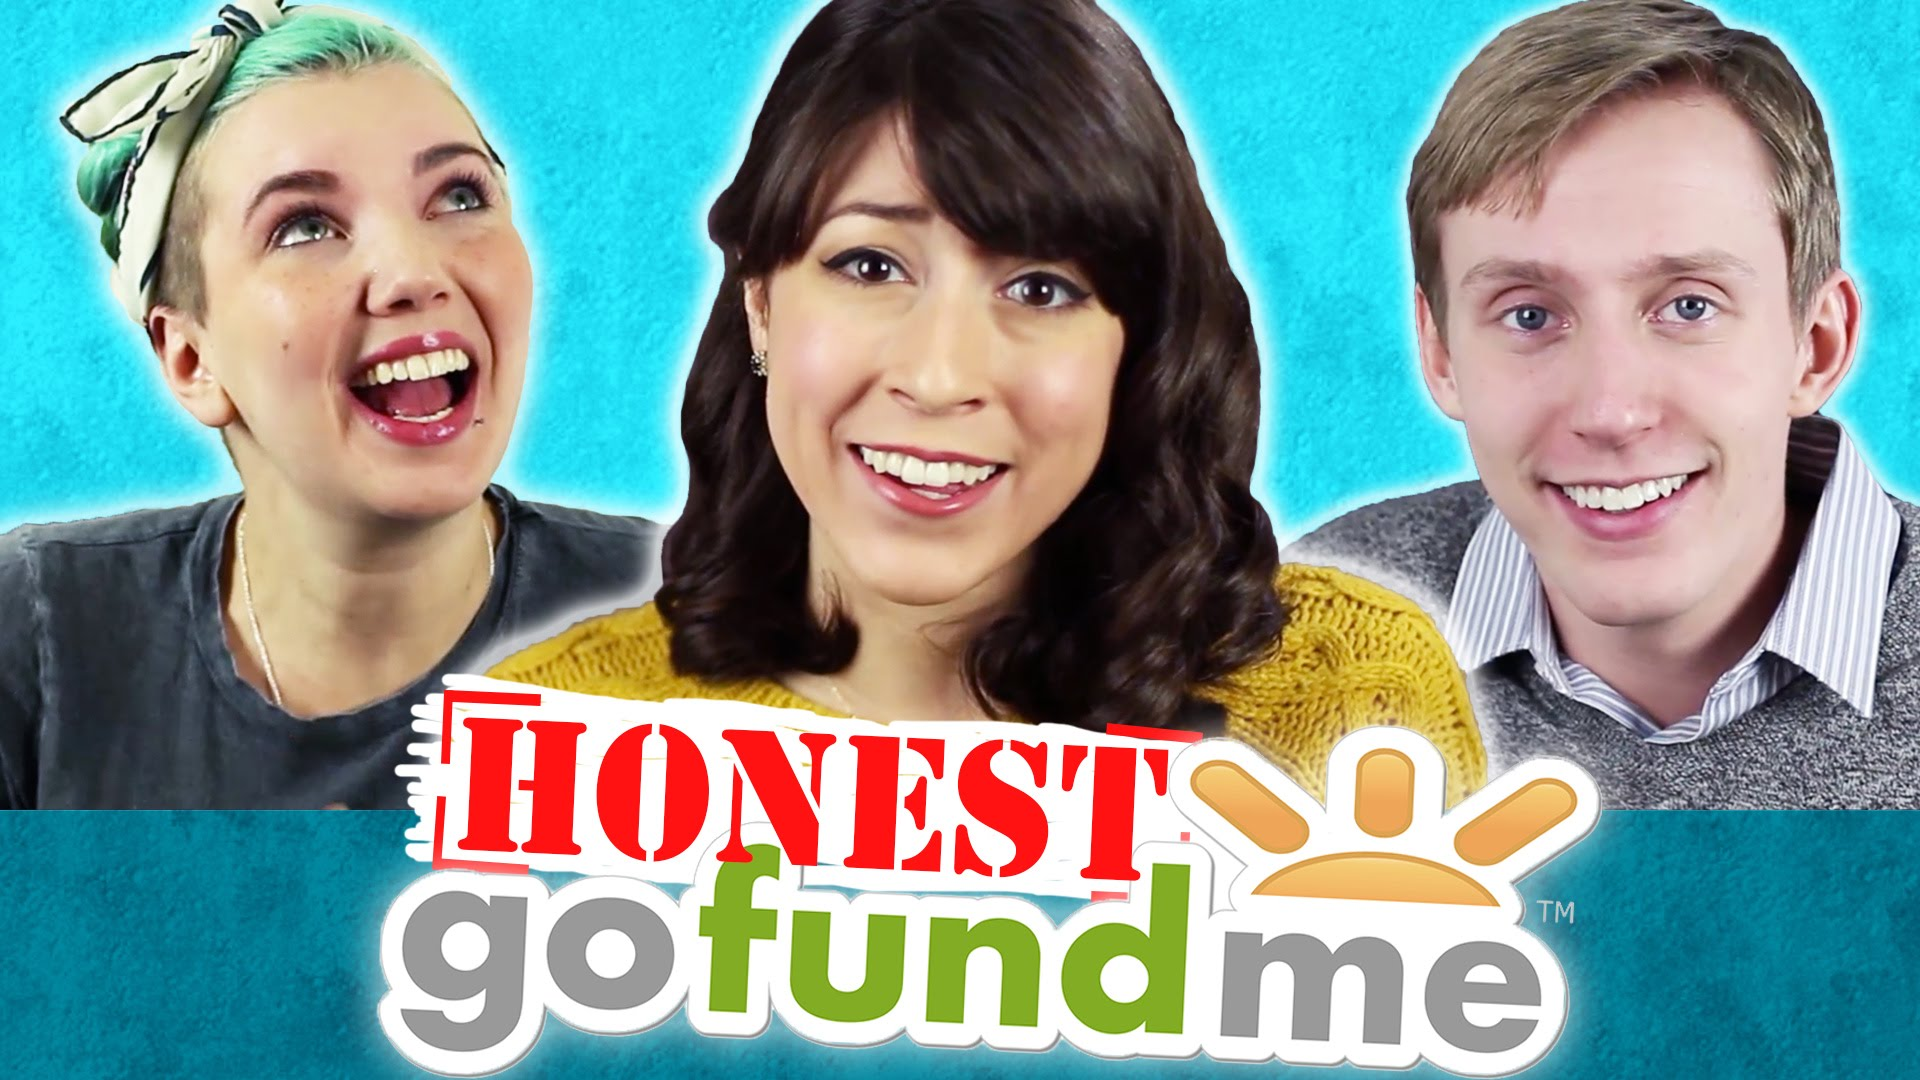 An Honest GoFundMe Video